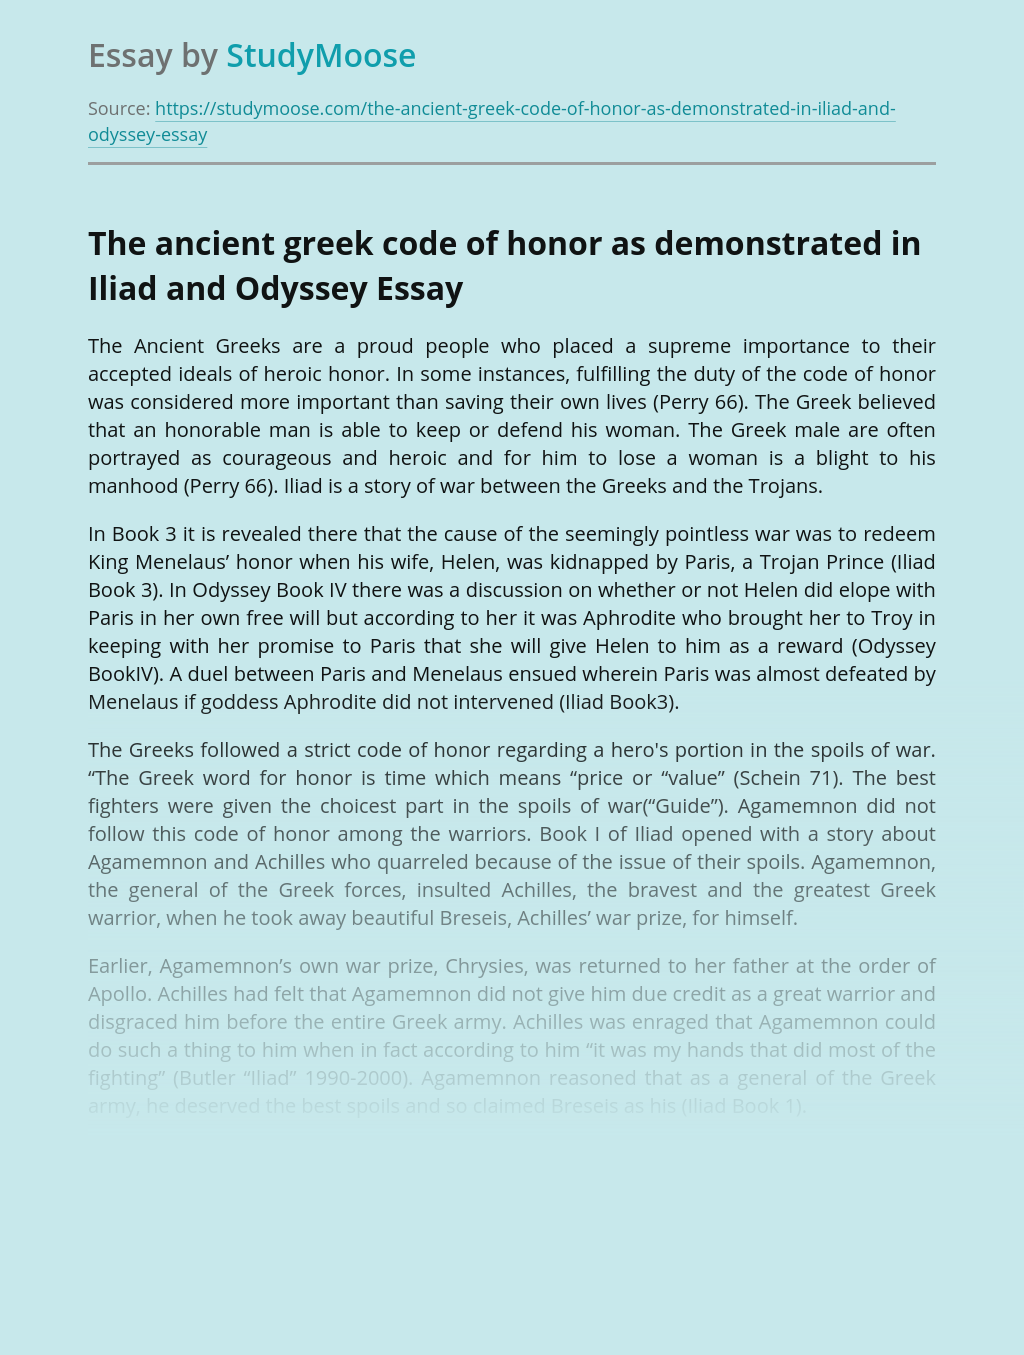 The ancient greek code of honor as demonstrated in Iliad and Odyssey